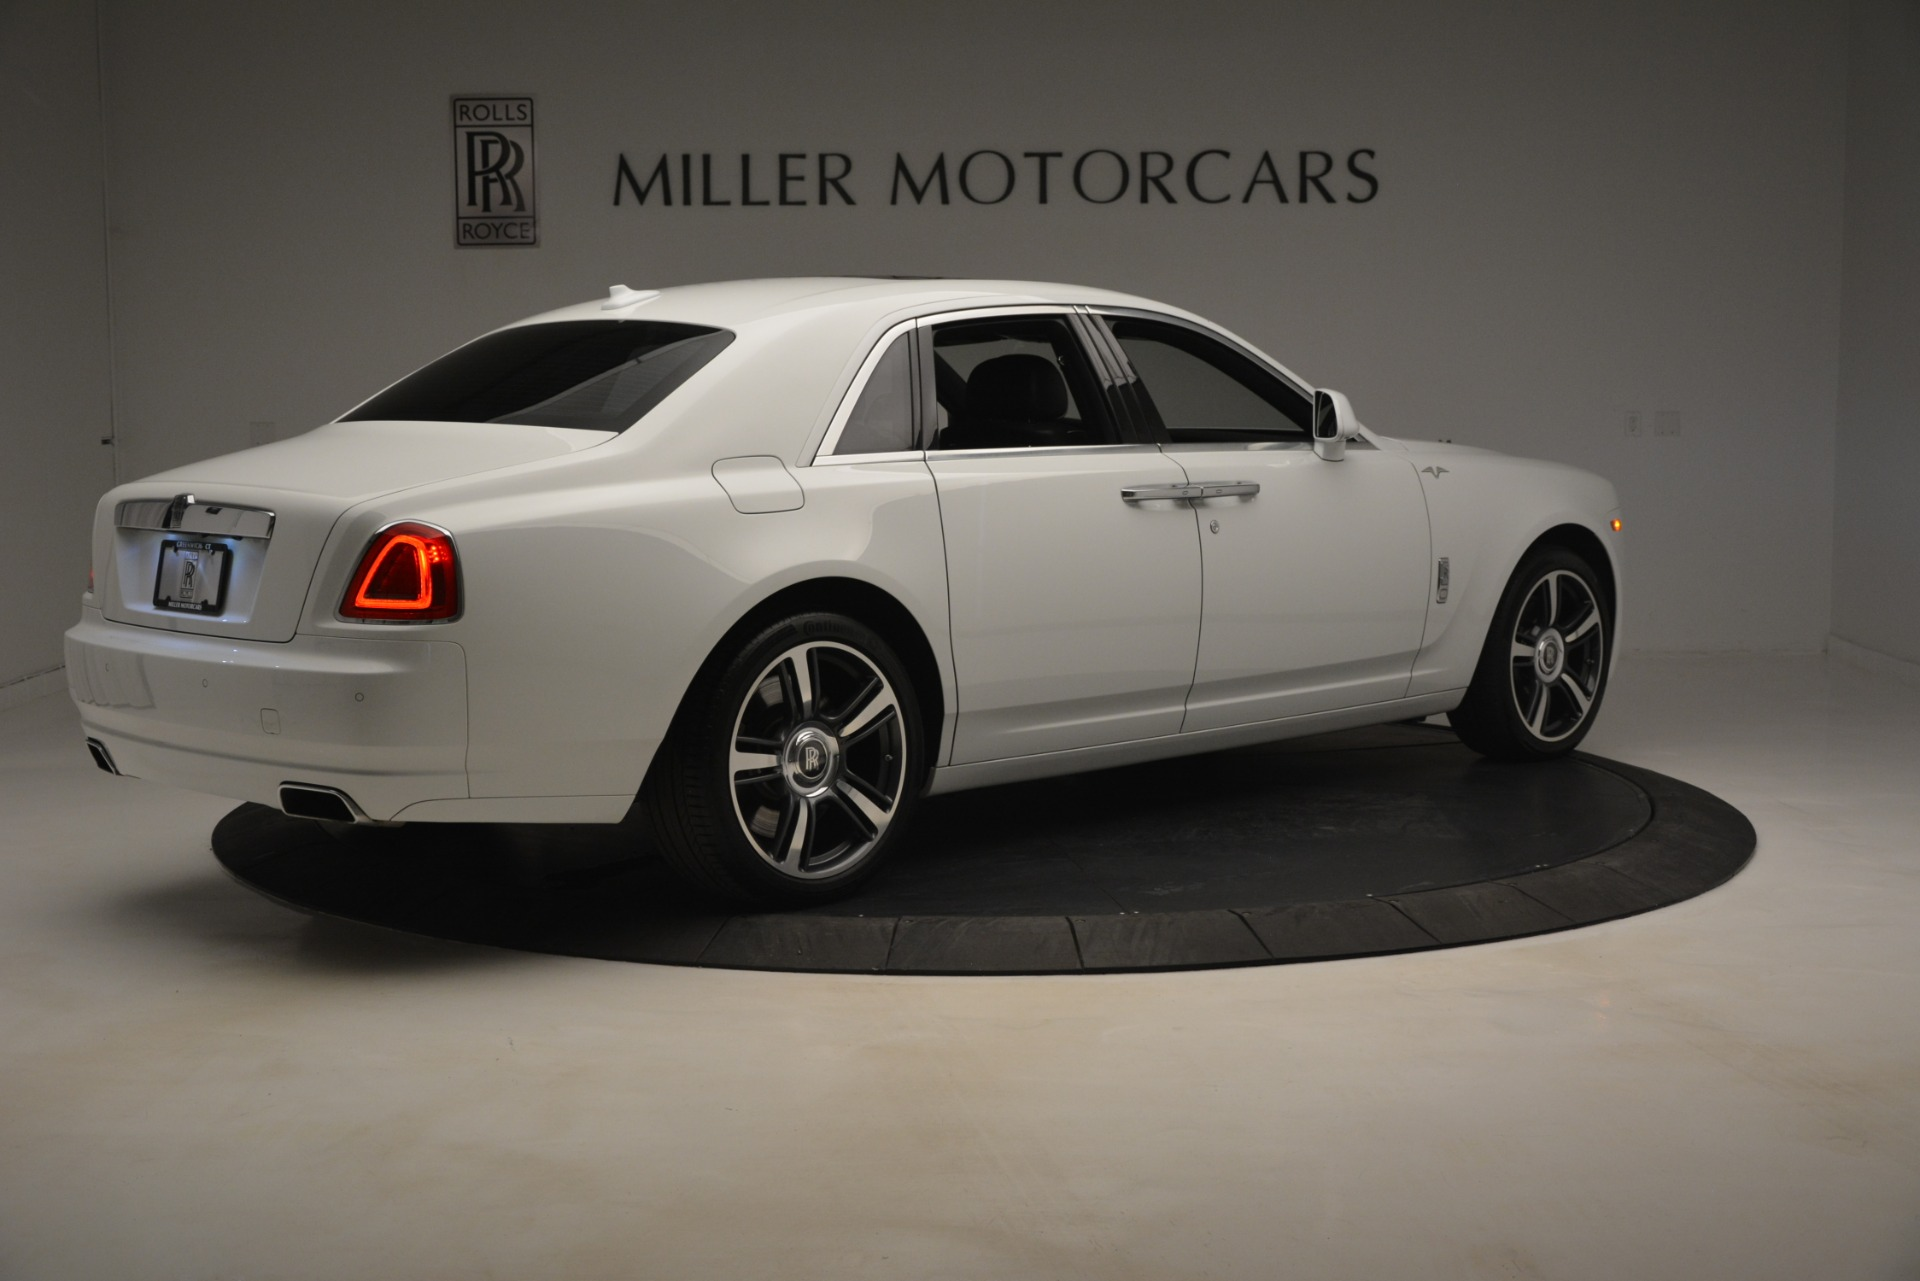 Used 2014 Rolls-Royce Ghost V-Spec For Sale In Westport, CT 2989_p9